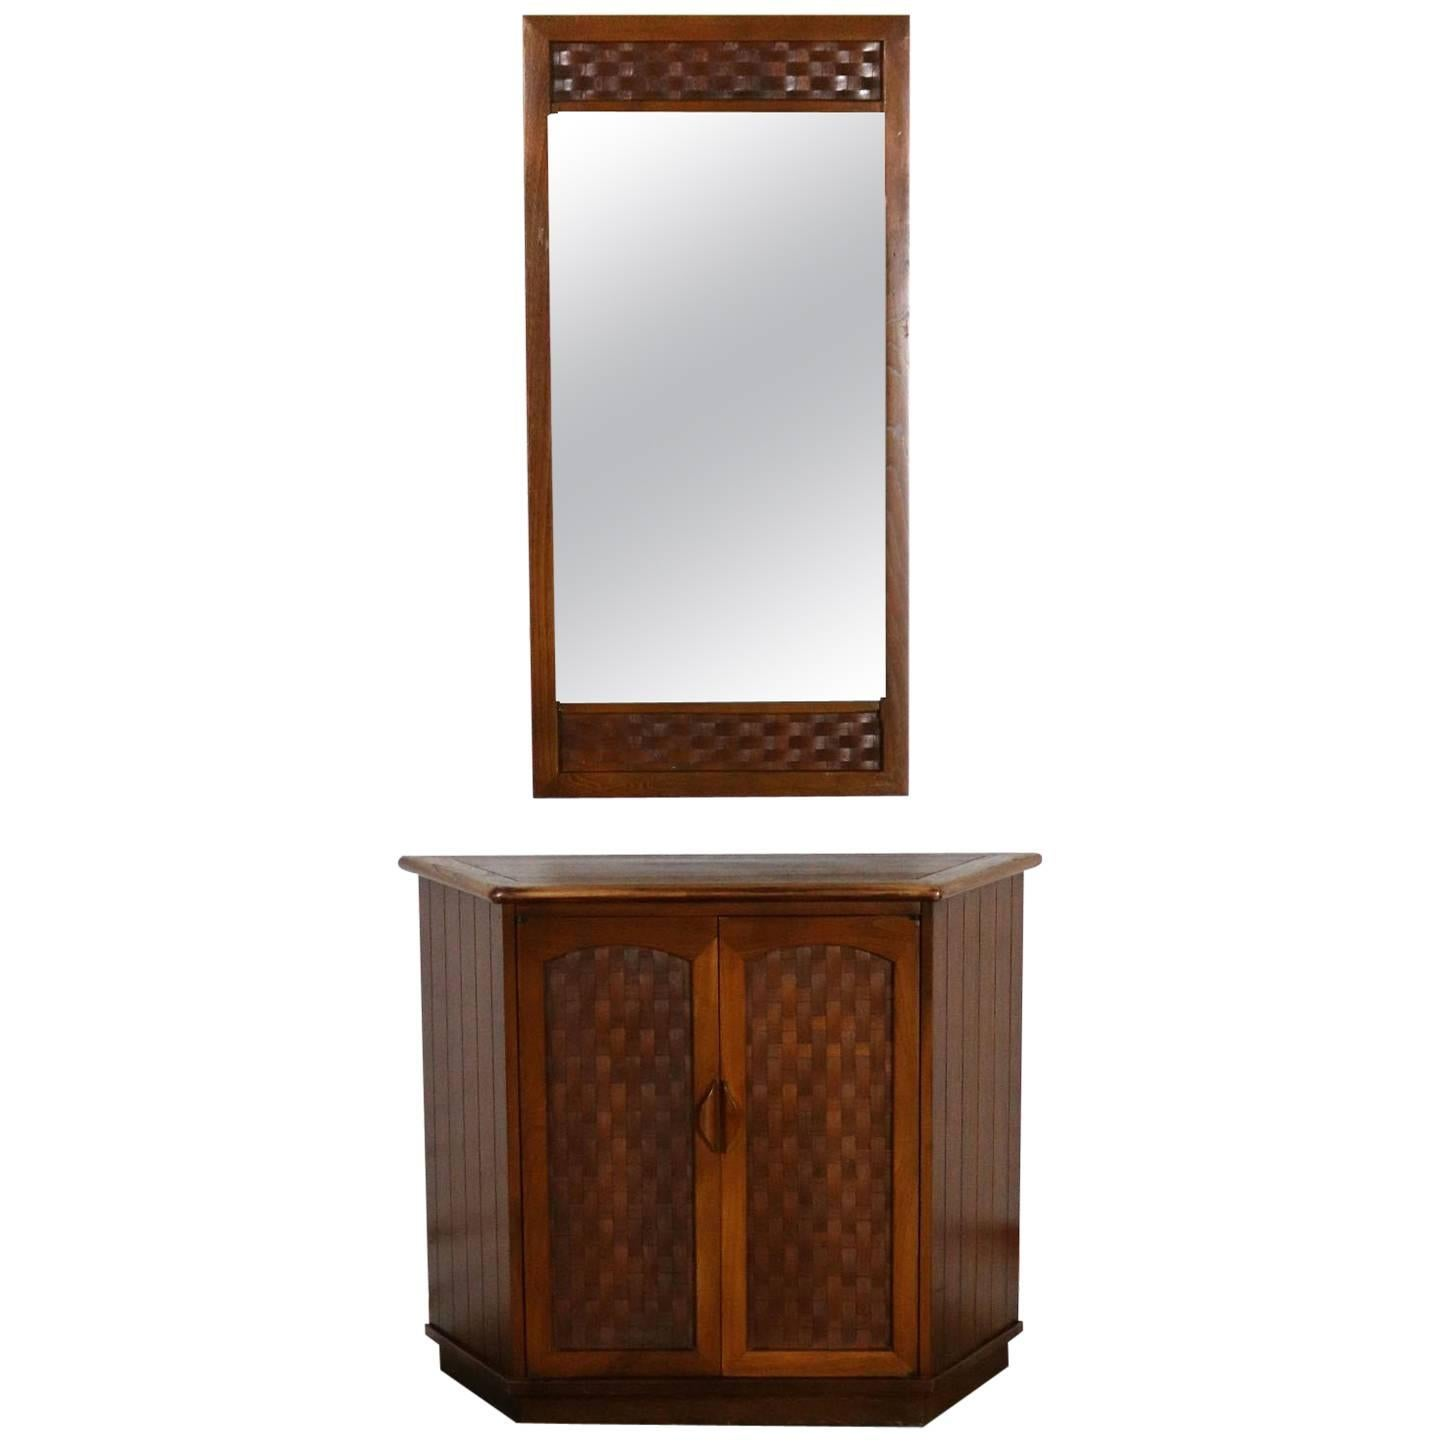 Mirror Inc Topeka Ks Console Cabinet And Mirror Basket Weave Style Lane Perception By Warren Church